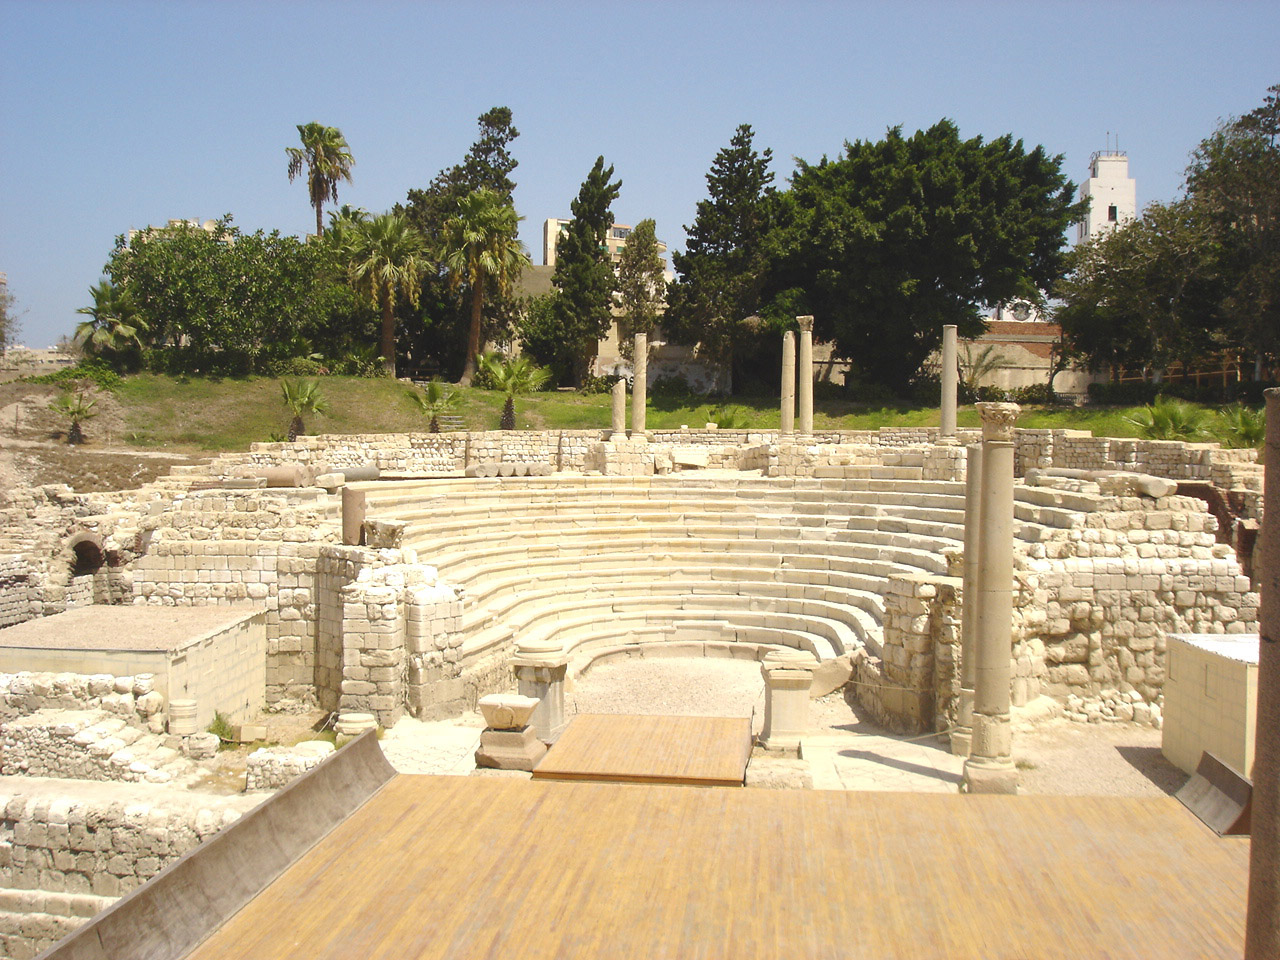 Roman Theater in Alexandria, Egypt